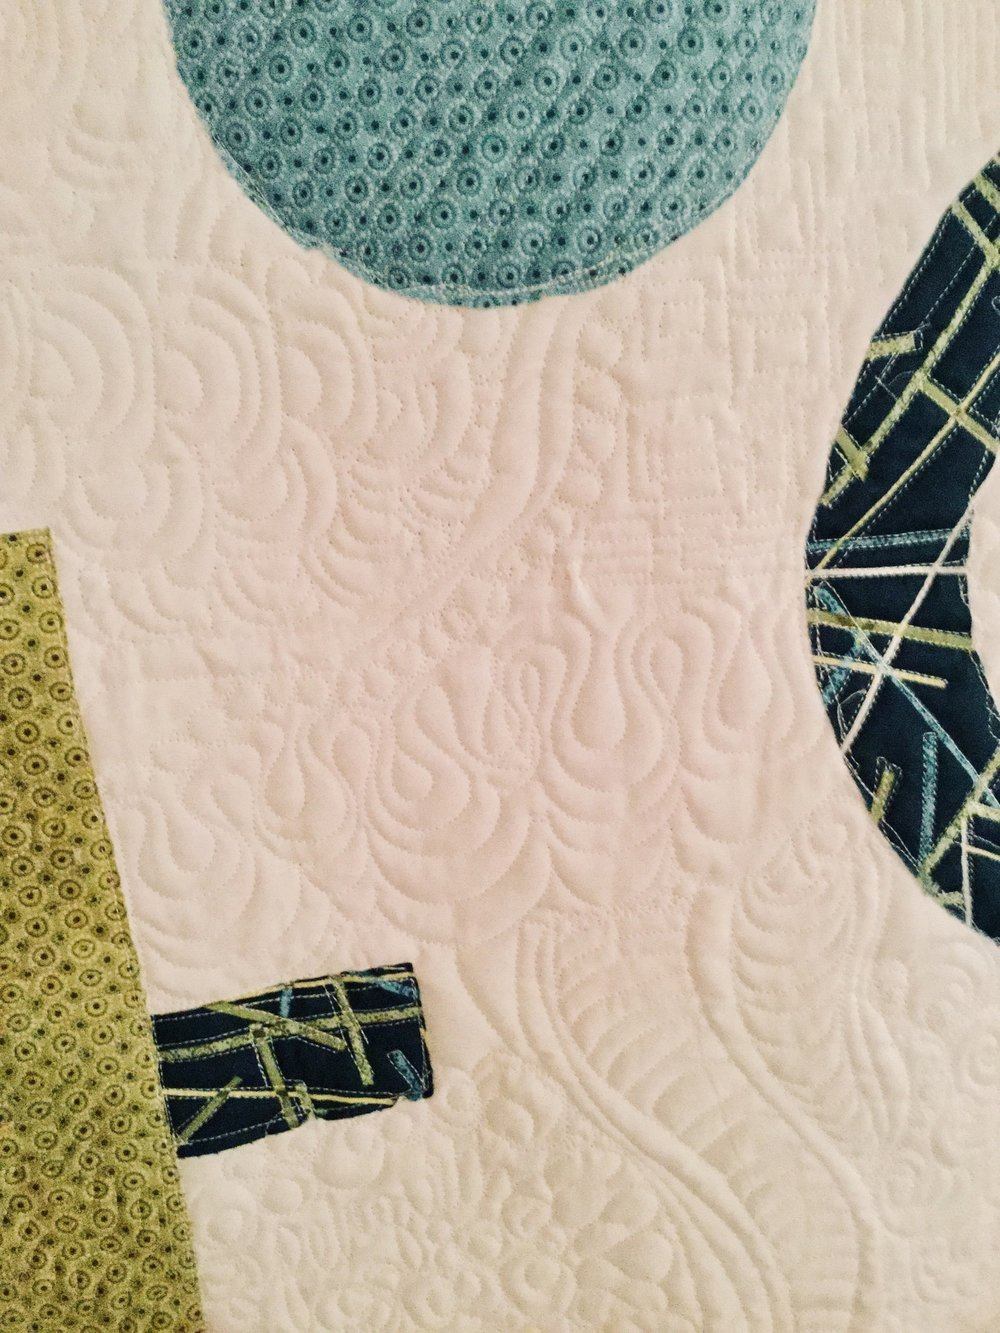 Free motion quilting on modern appliqué